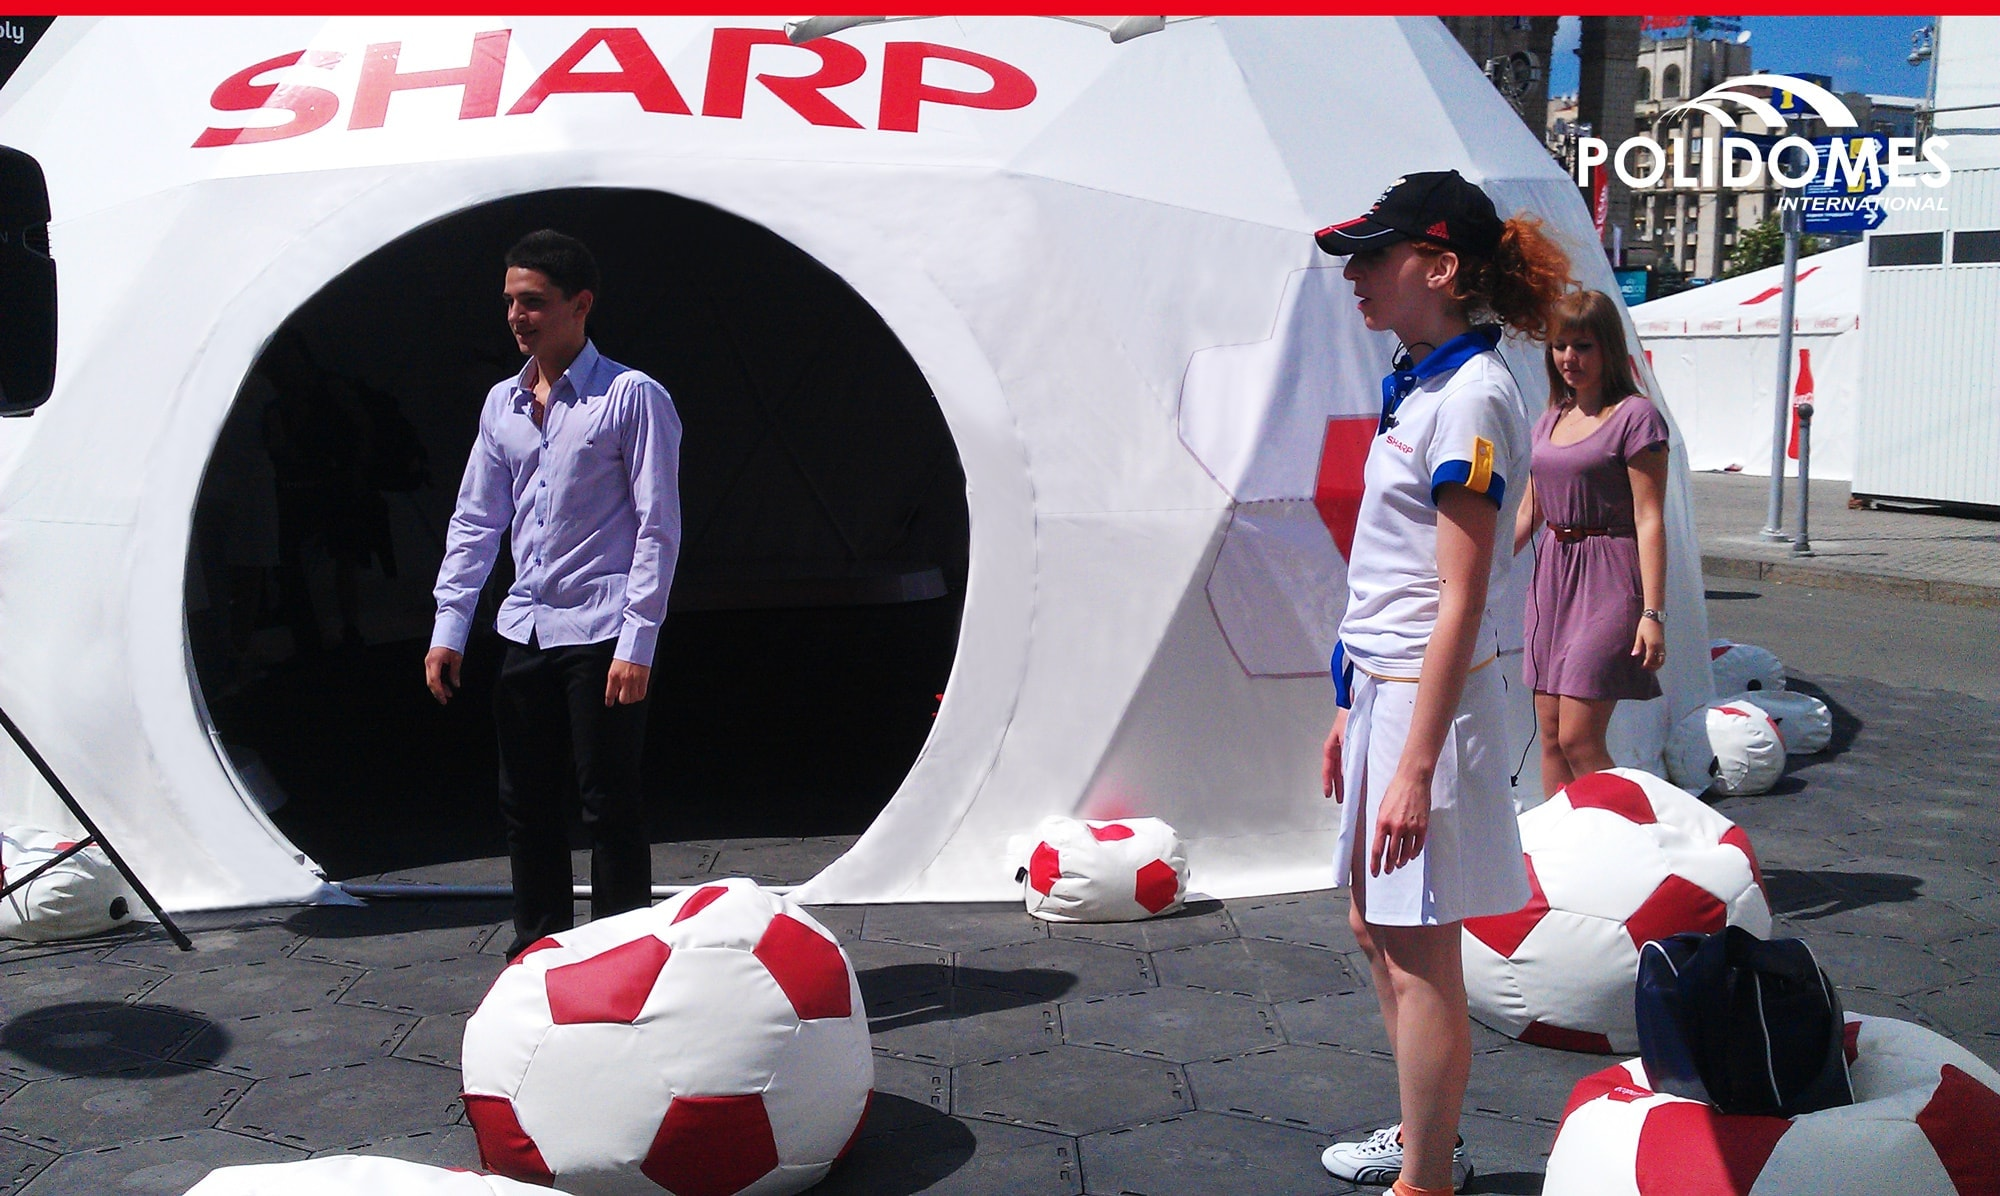 A geodesic sport dome made for Sharp - main Euro 2012 sponsor